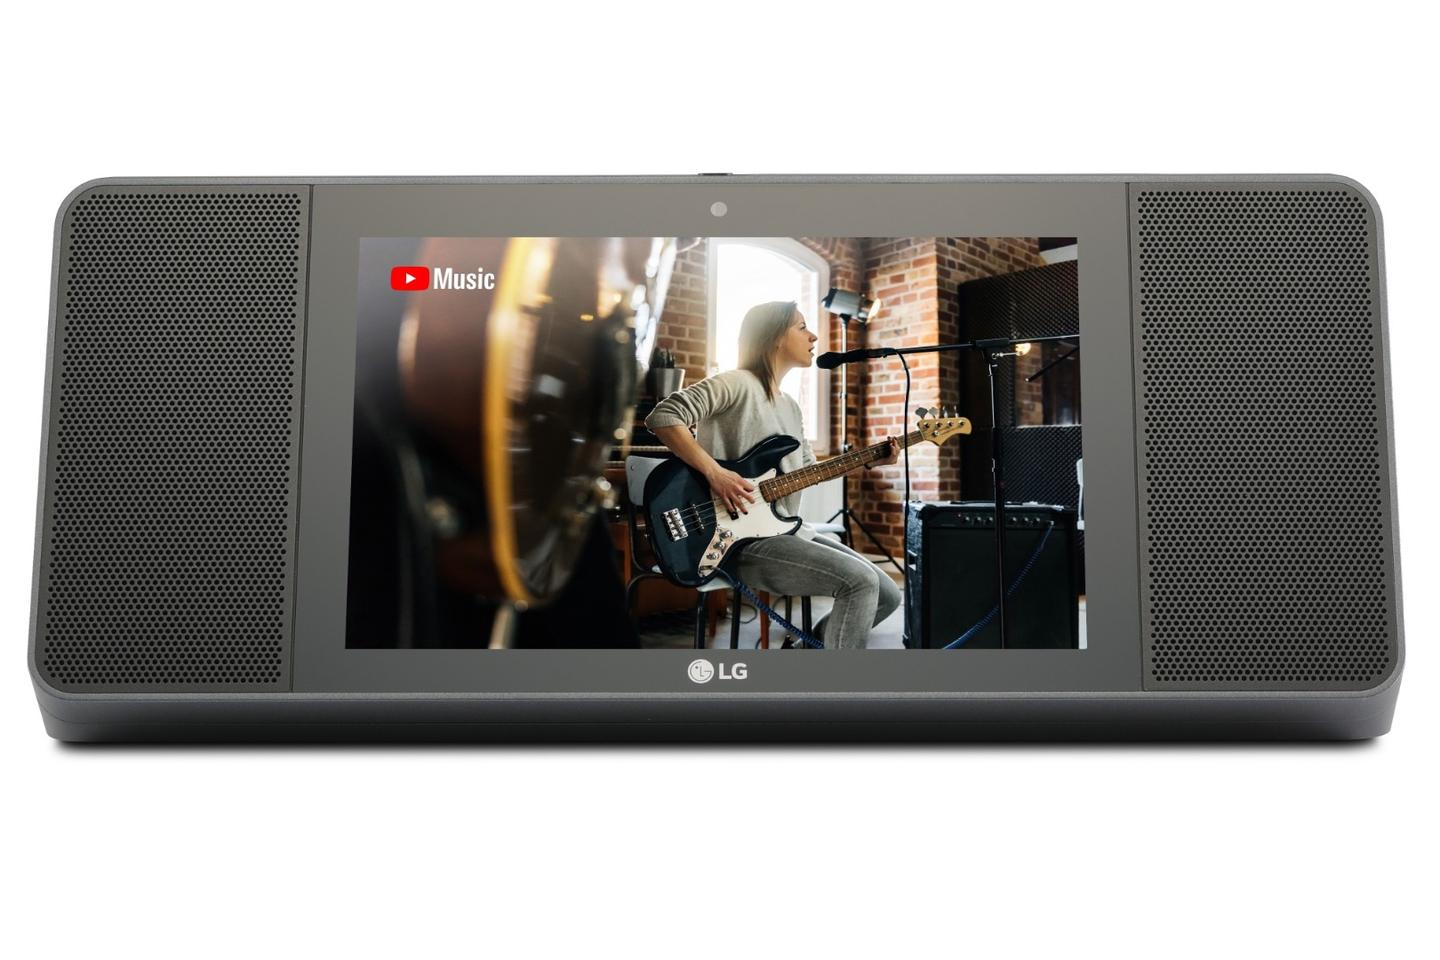 TheXBoom AI ThinQ model WK9 rocks 20 W stereo speakers, an 8-inch touch display and a 5 MP front-facing webcam